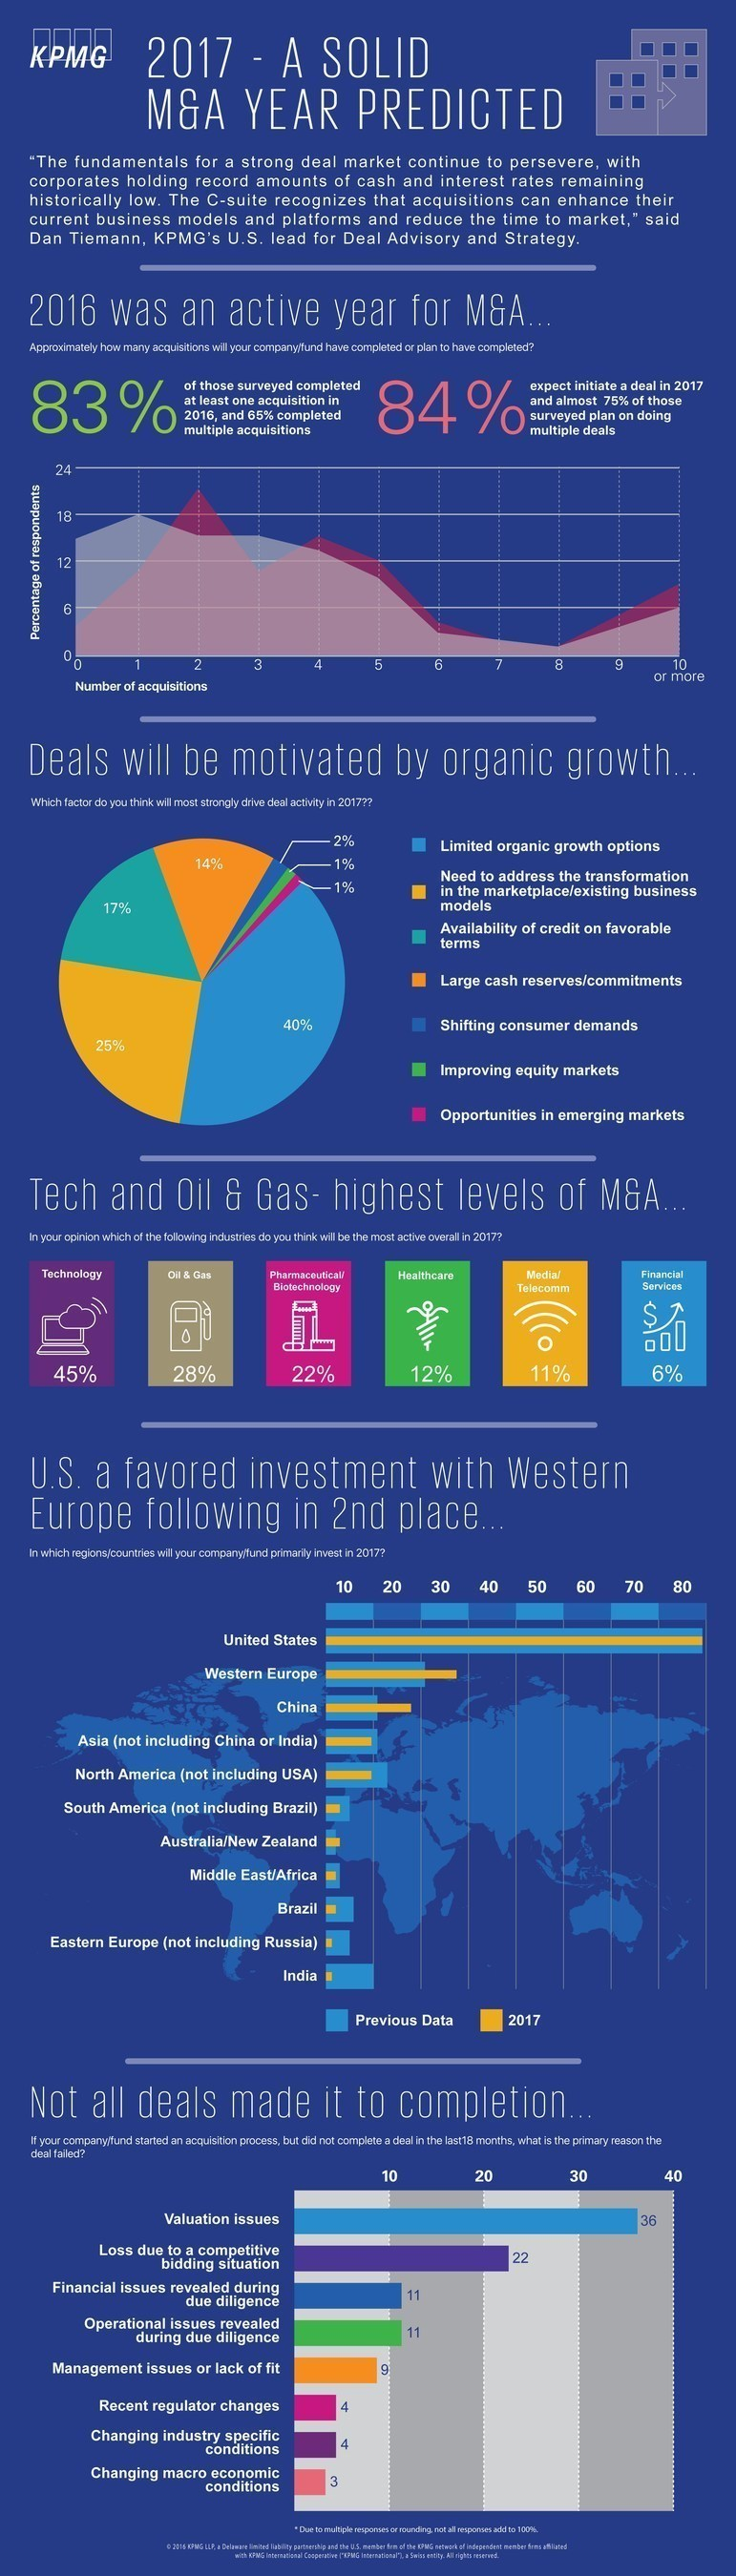 KPMG LLP's M&A Pulse 2017 Infographic